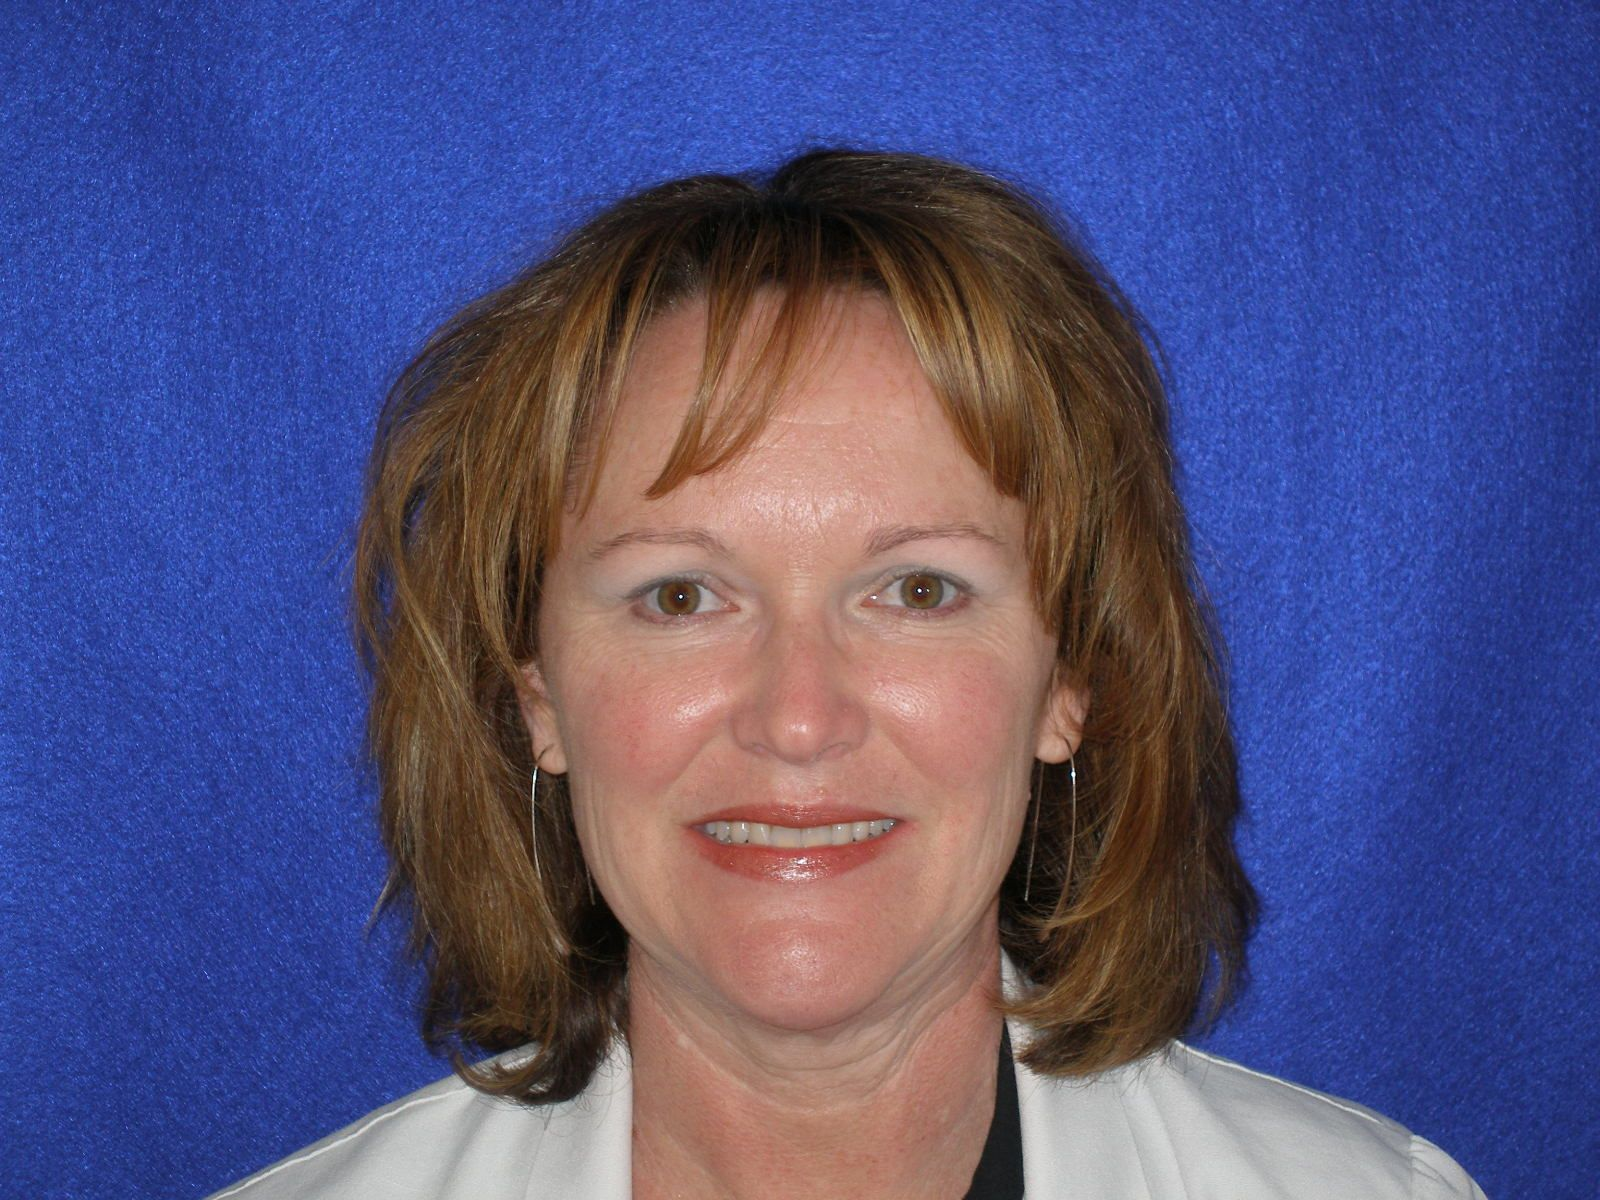 Donna is our Fffice Manager and Certified Orthodontic Assistant